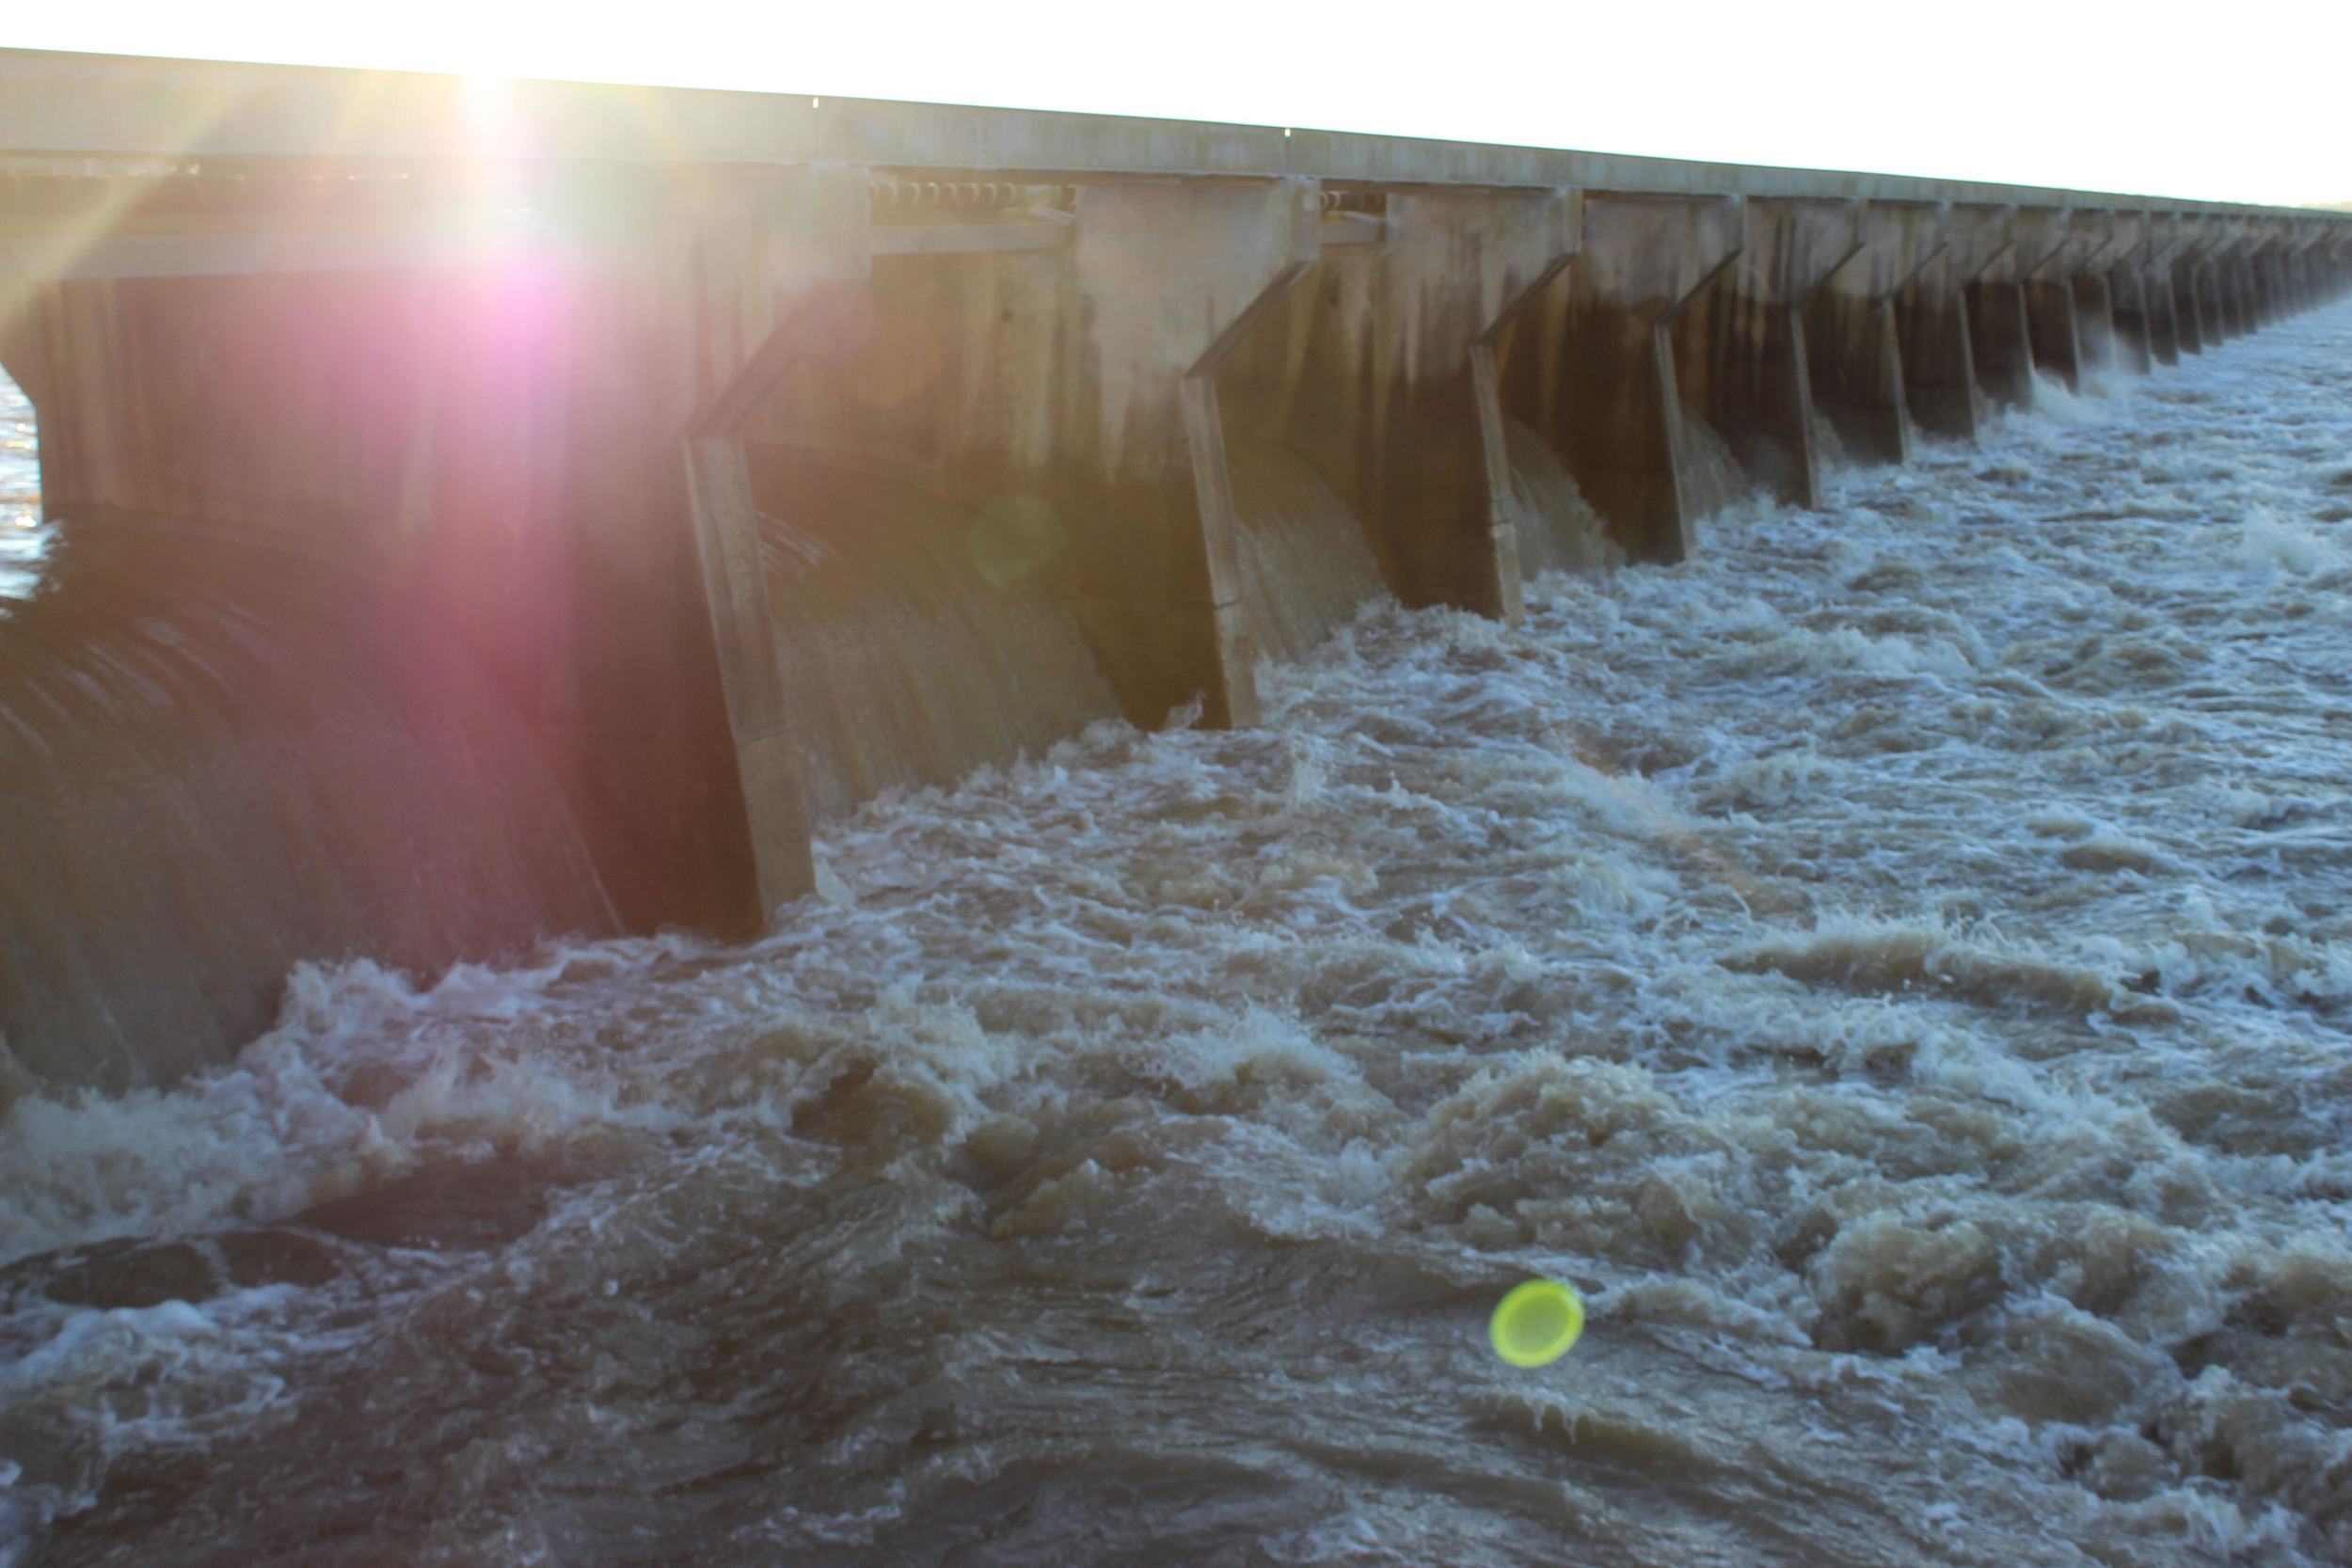 """This photo taken on the edge of the Spillway as the water rushed through included a quote caption: """"An awaken heart is like a sky that pours light."""" Adventurous and dreamy, I hope!"""